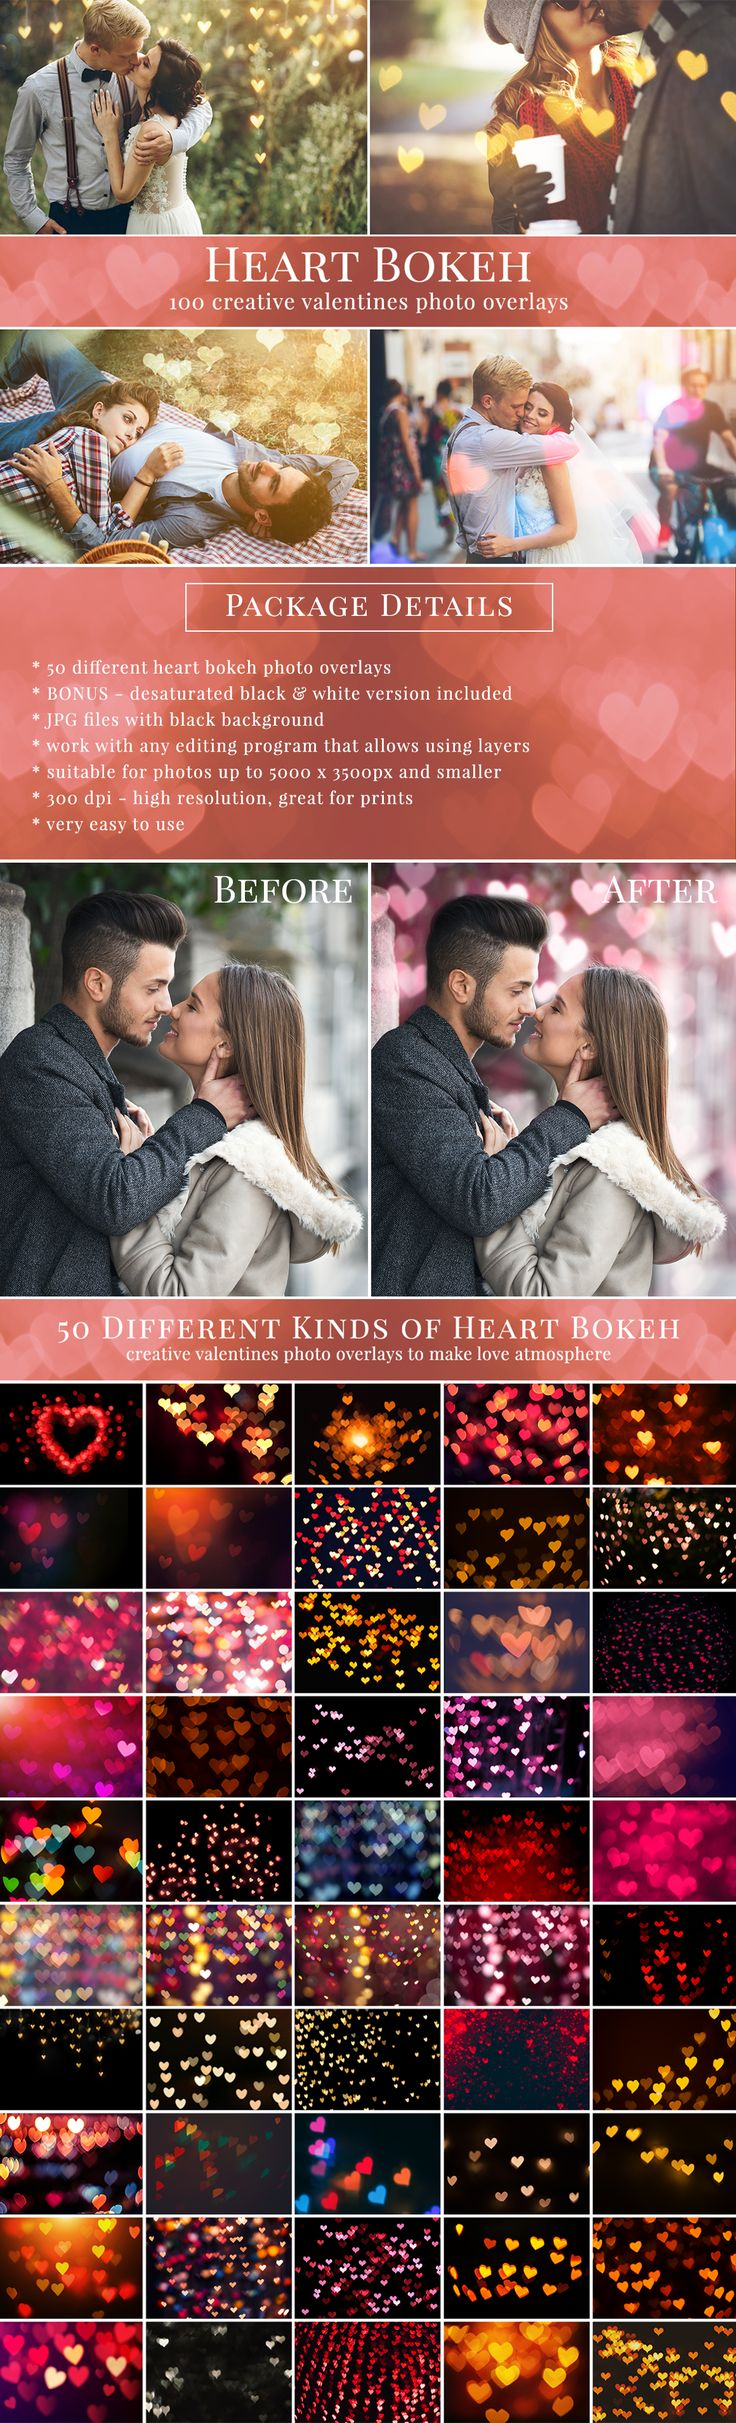 Creative Heart Bokeh photo overlays, great for Valentine's Day pictures. Weddings, couples, date pictures & mini sessions. Photo overlays for Photographers. For Adobe Photoshop CC & CS, Gimp and Zoner. From Brown Leopard. Bonus - desaturated overlays.